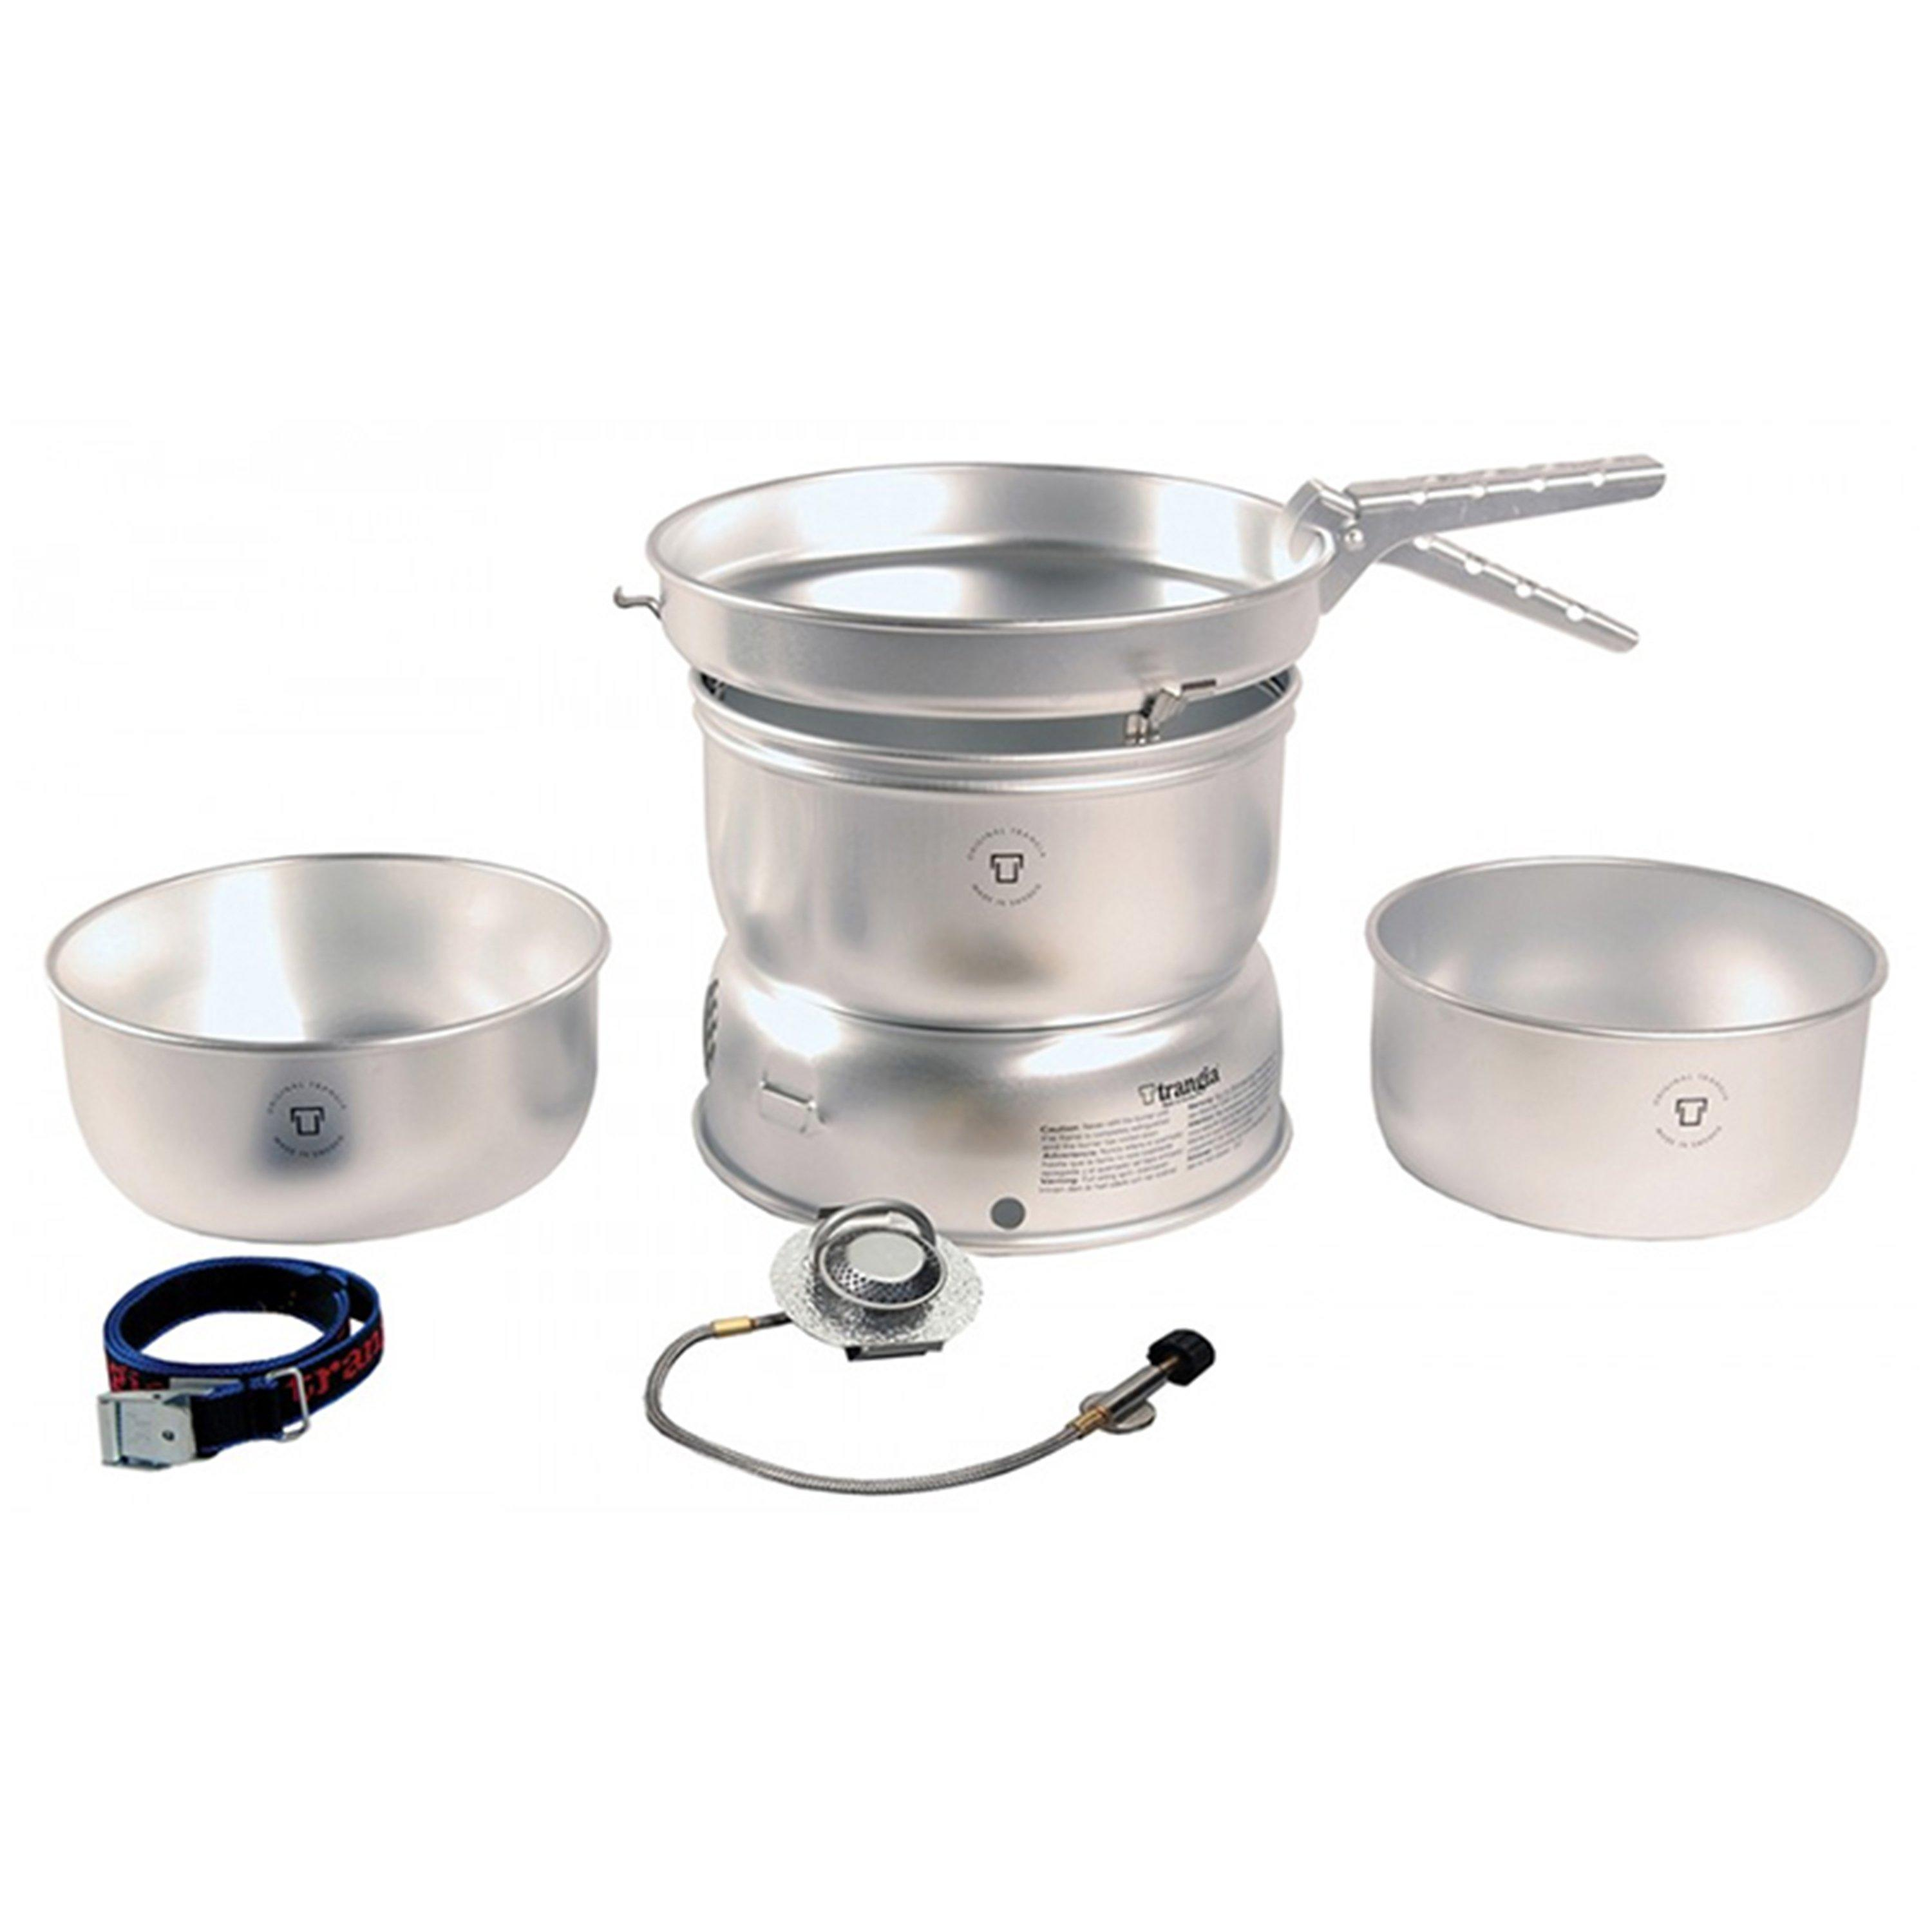 Trangia 271 Gas Cooking System (12 Person) Grey